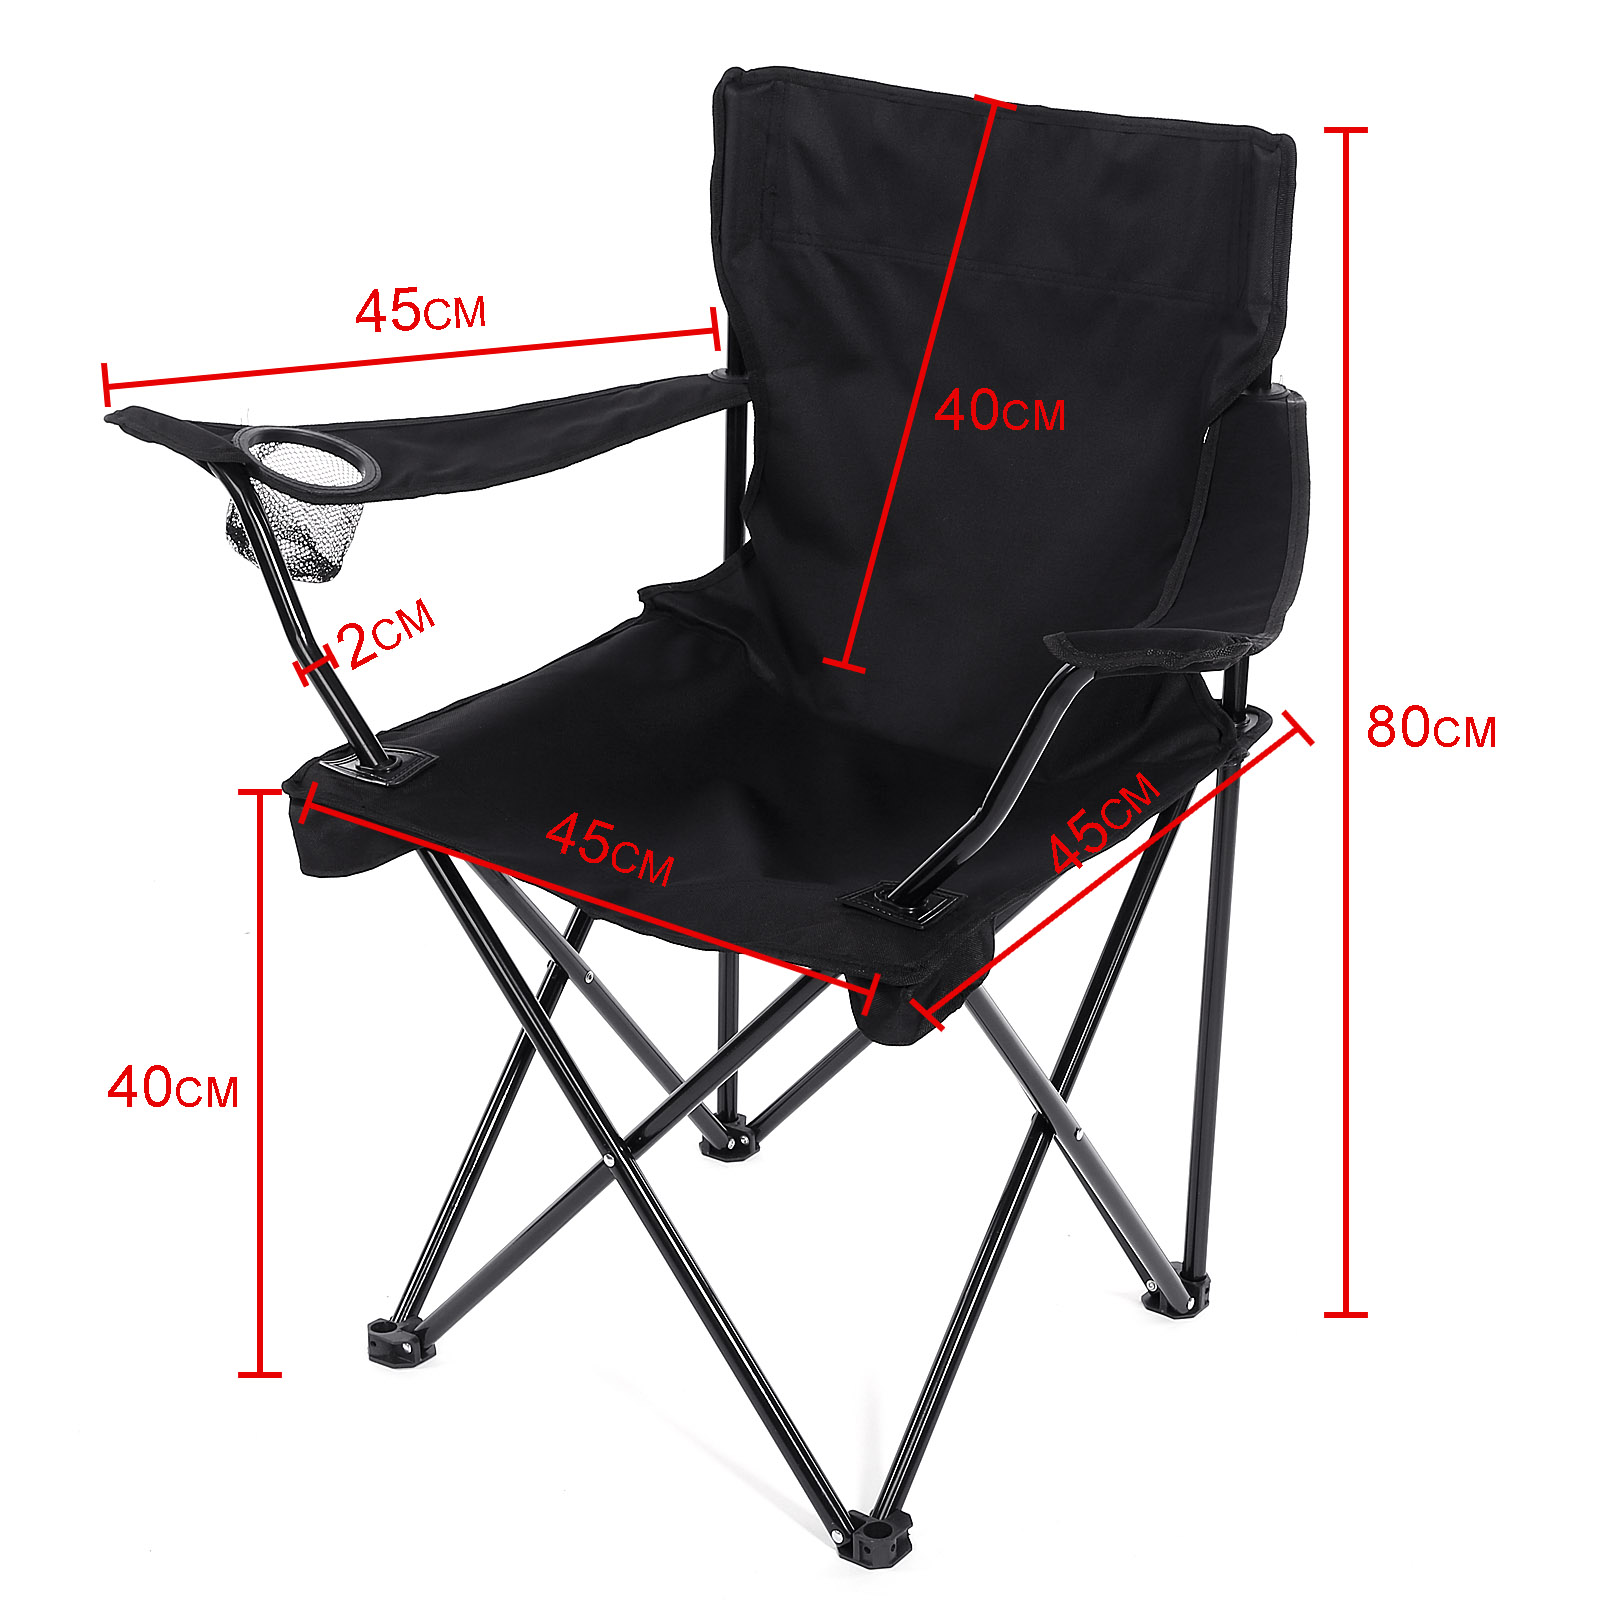 BRAND NEW LIGHTWEIGHT PORTABLE OUTDOOR CAMPING GARDEN FOLDING CHAIR 3 COLOURS